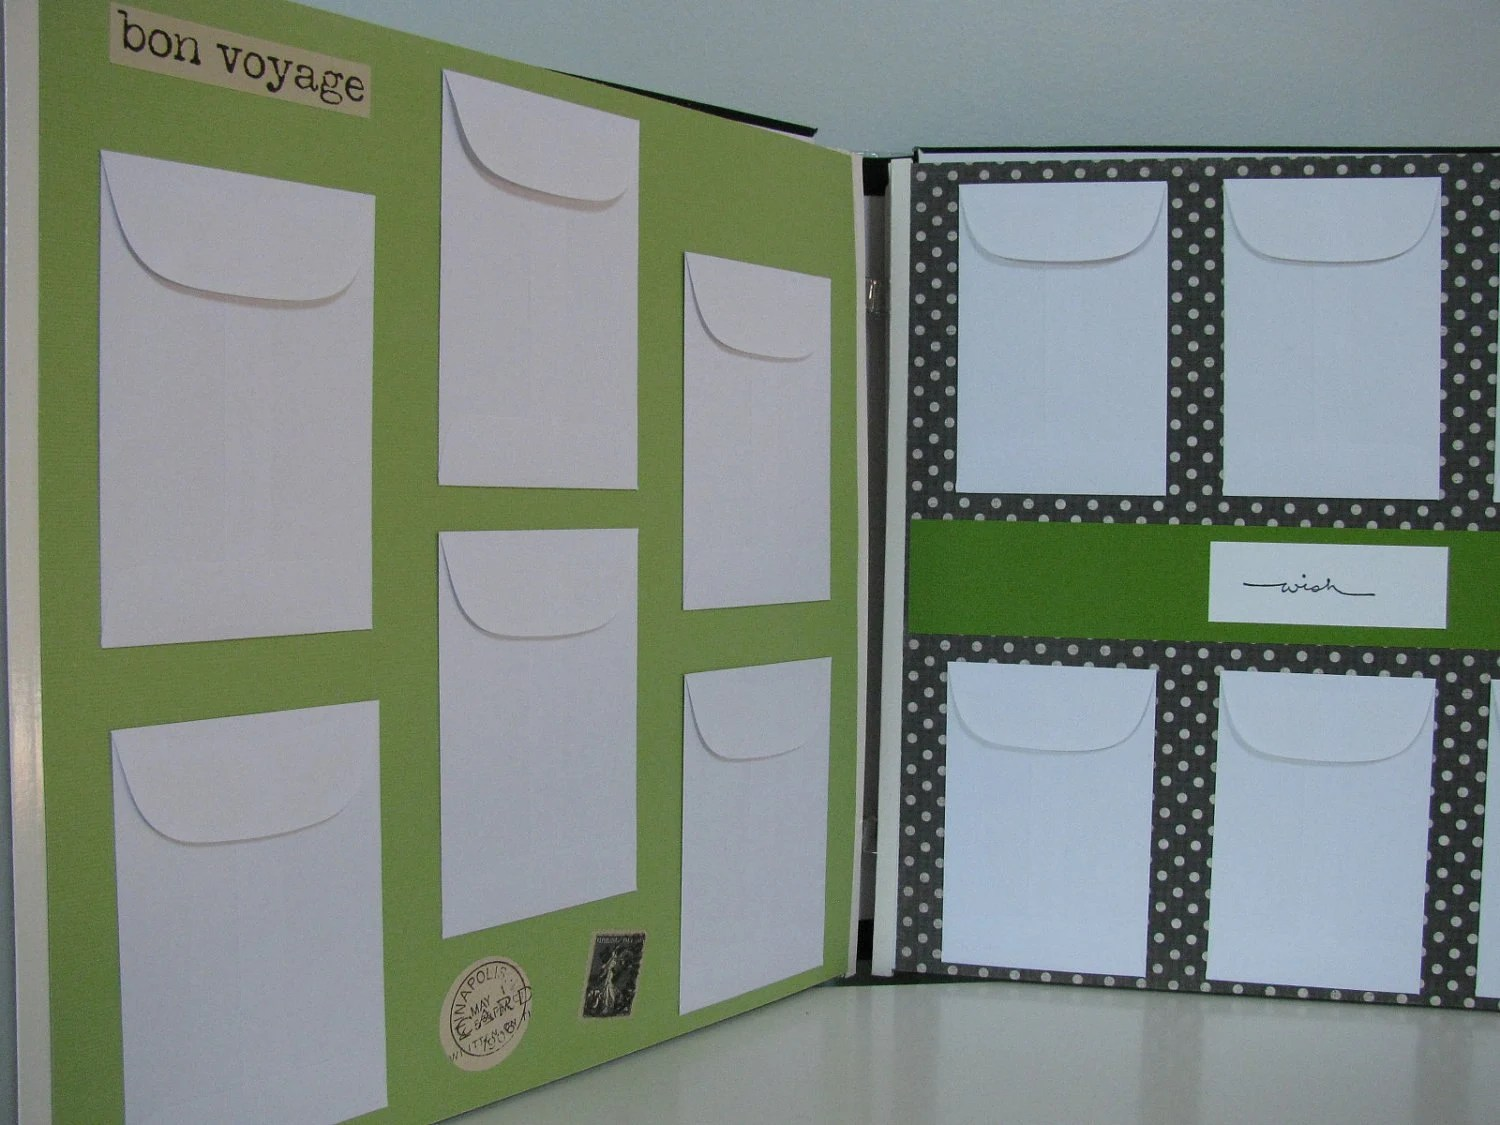 FREE CUSTOMIZING 12x12 Wedding Guestbook Scrapbook Album- Choose Any Color Paper, Theme, Fabric Cover and FREE personalized table sign